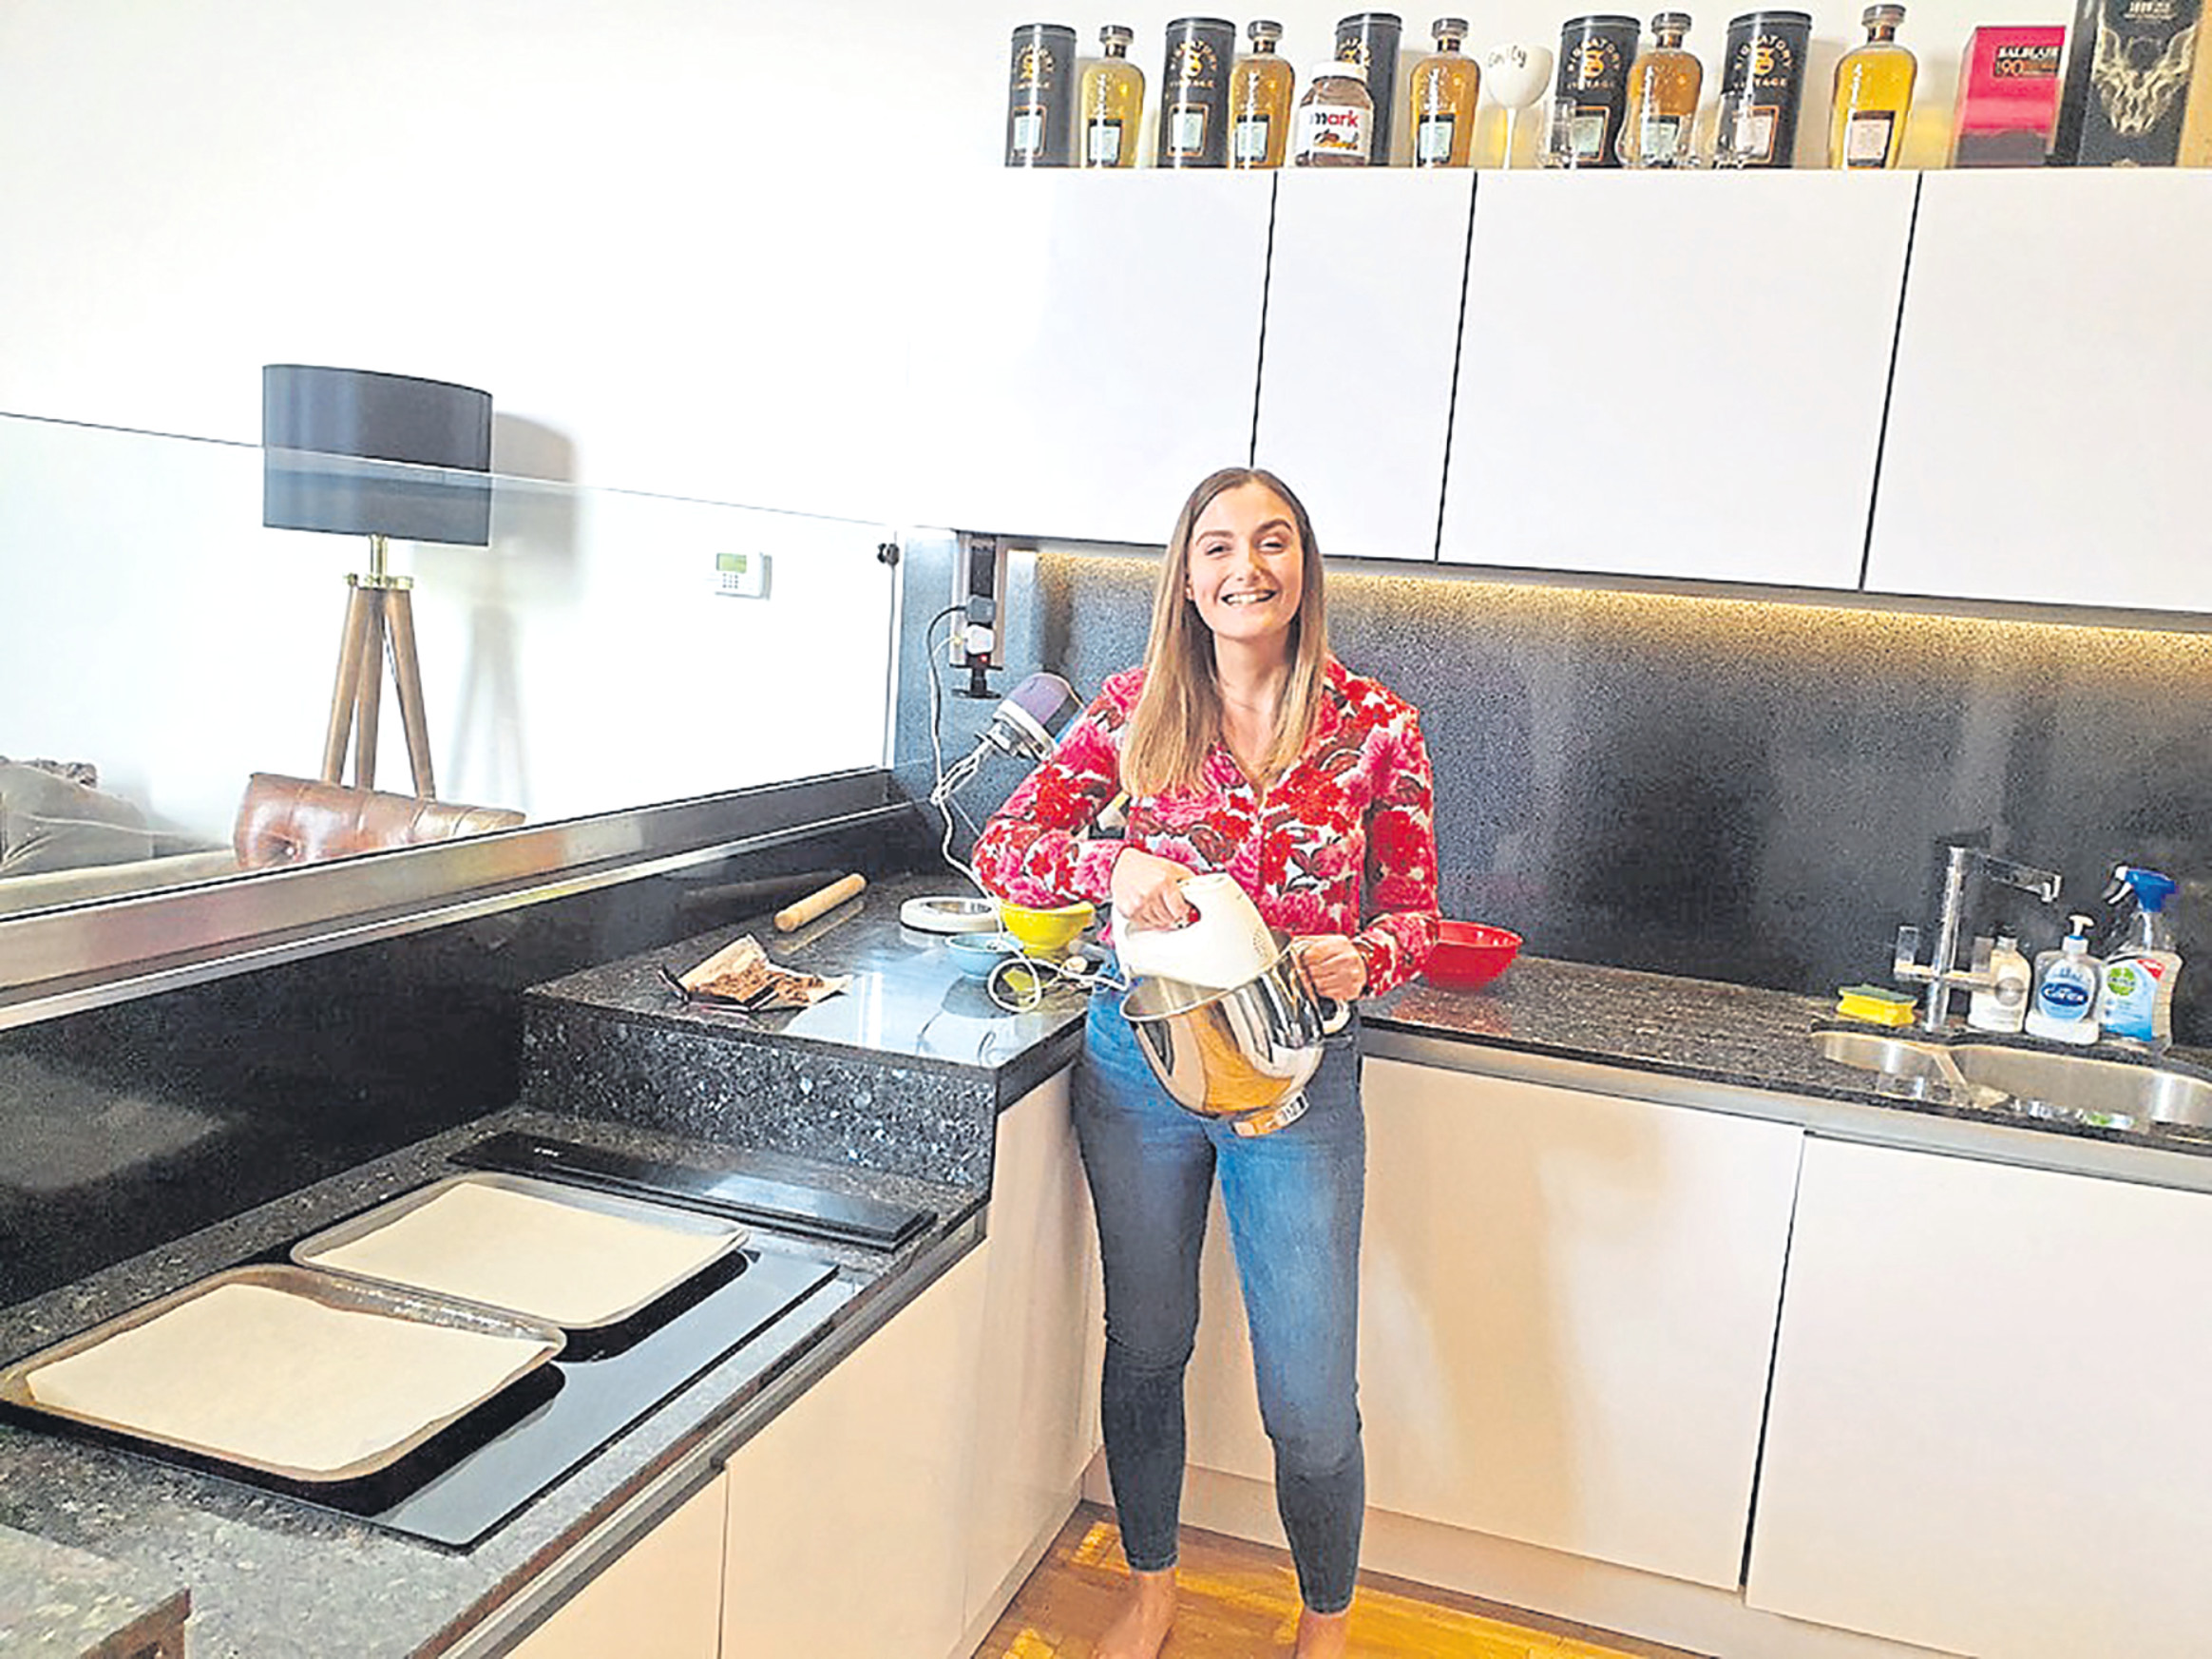 Emily Findlay has launched an e-book featuring all 26 bakes she produced during her 2.6 Challenge in May